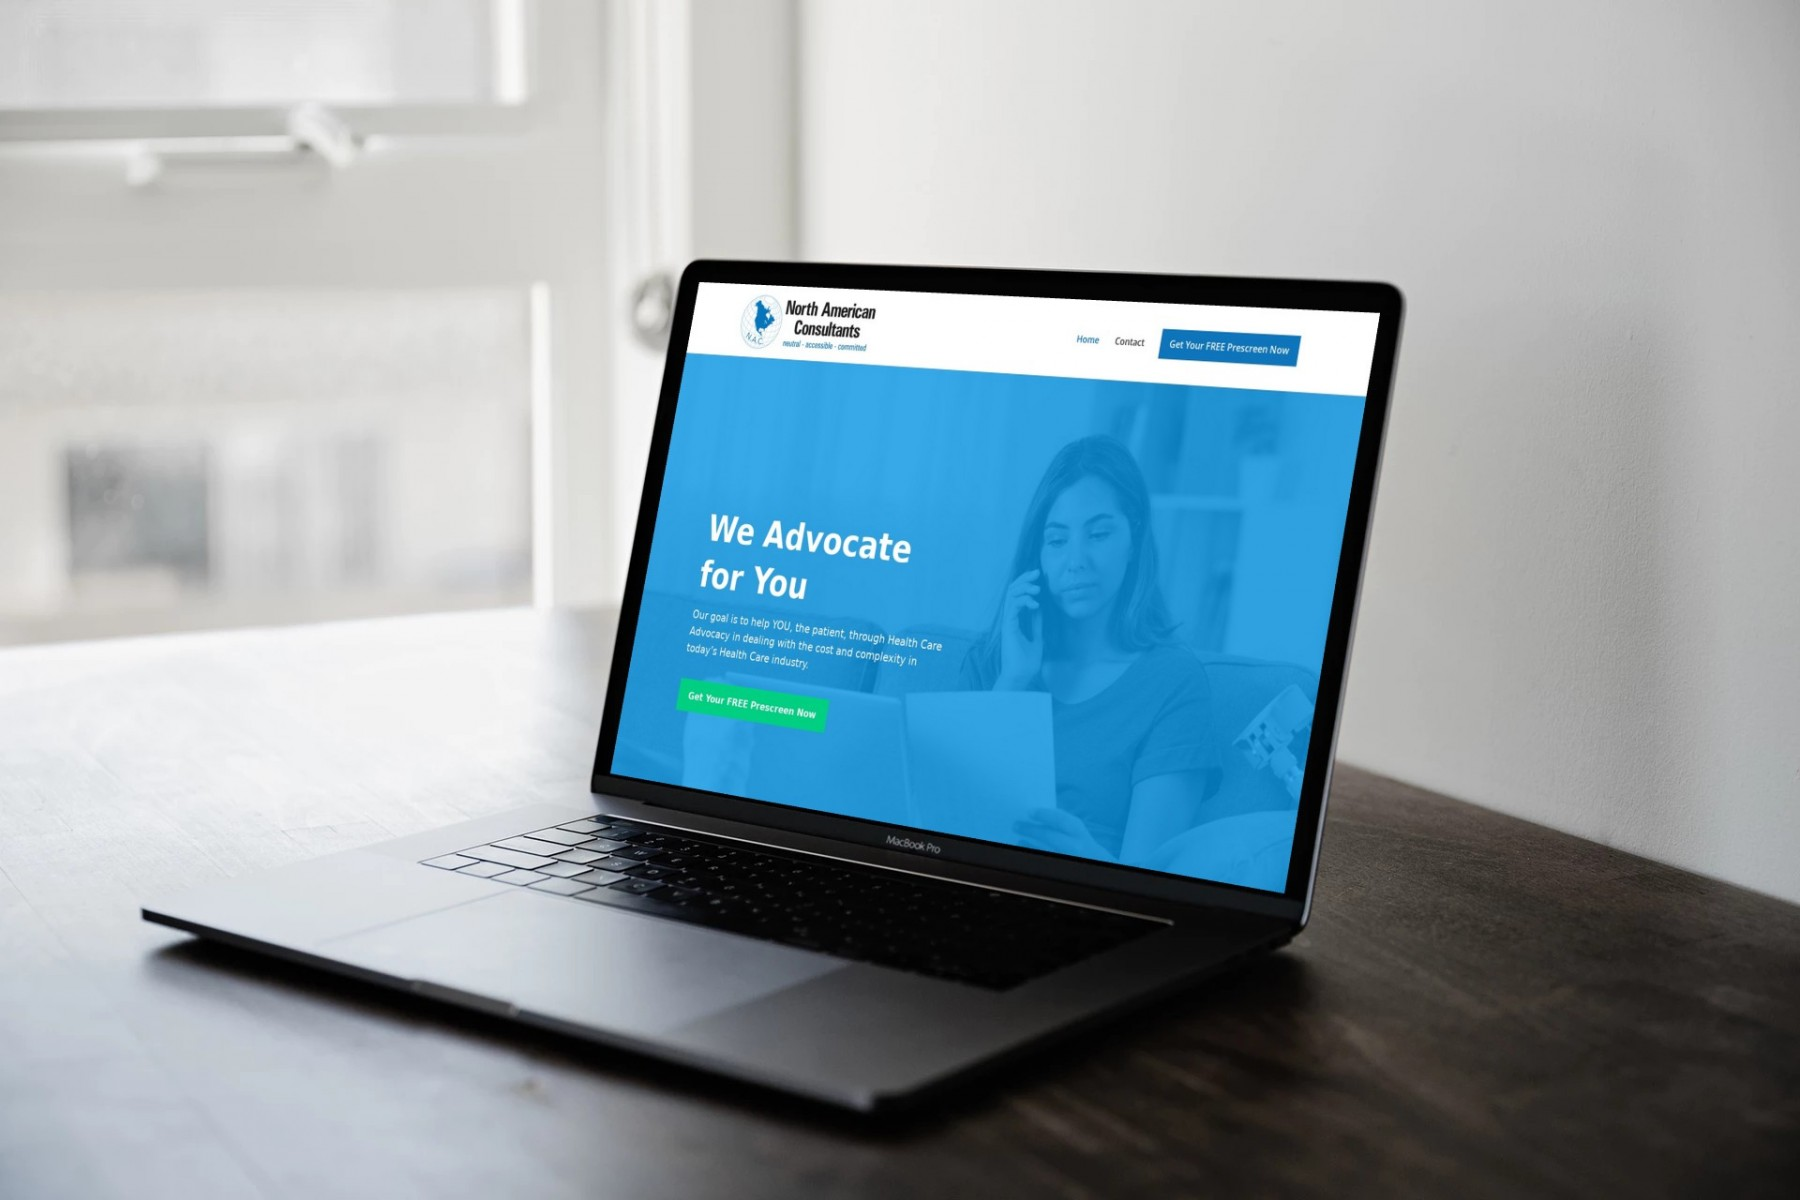 North American Consultants Website Design - Laptop